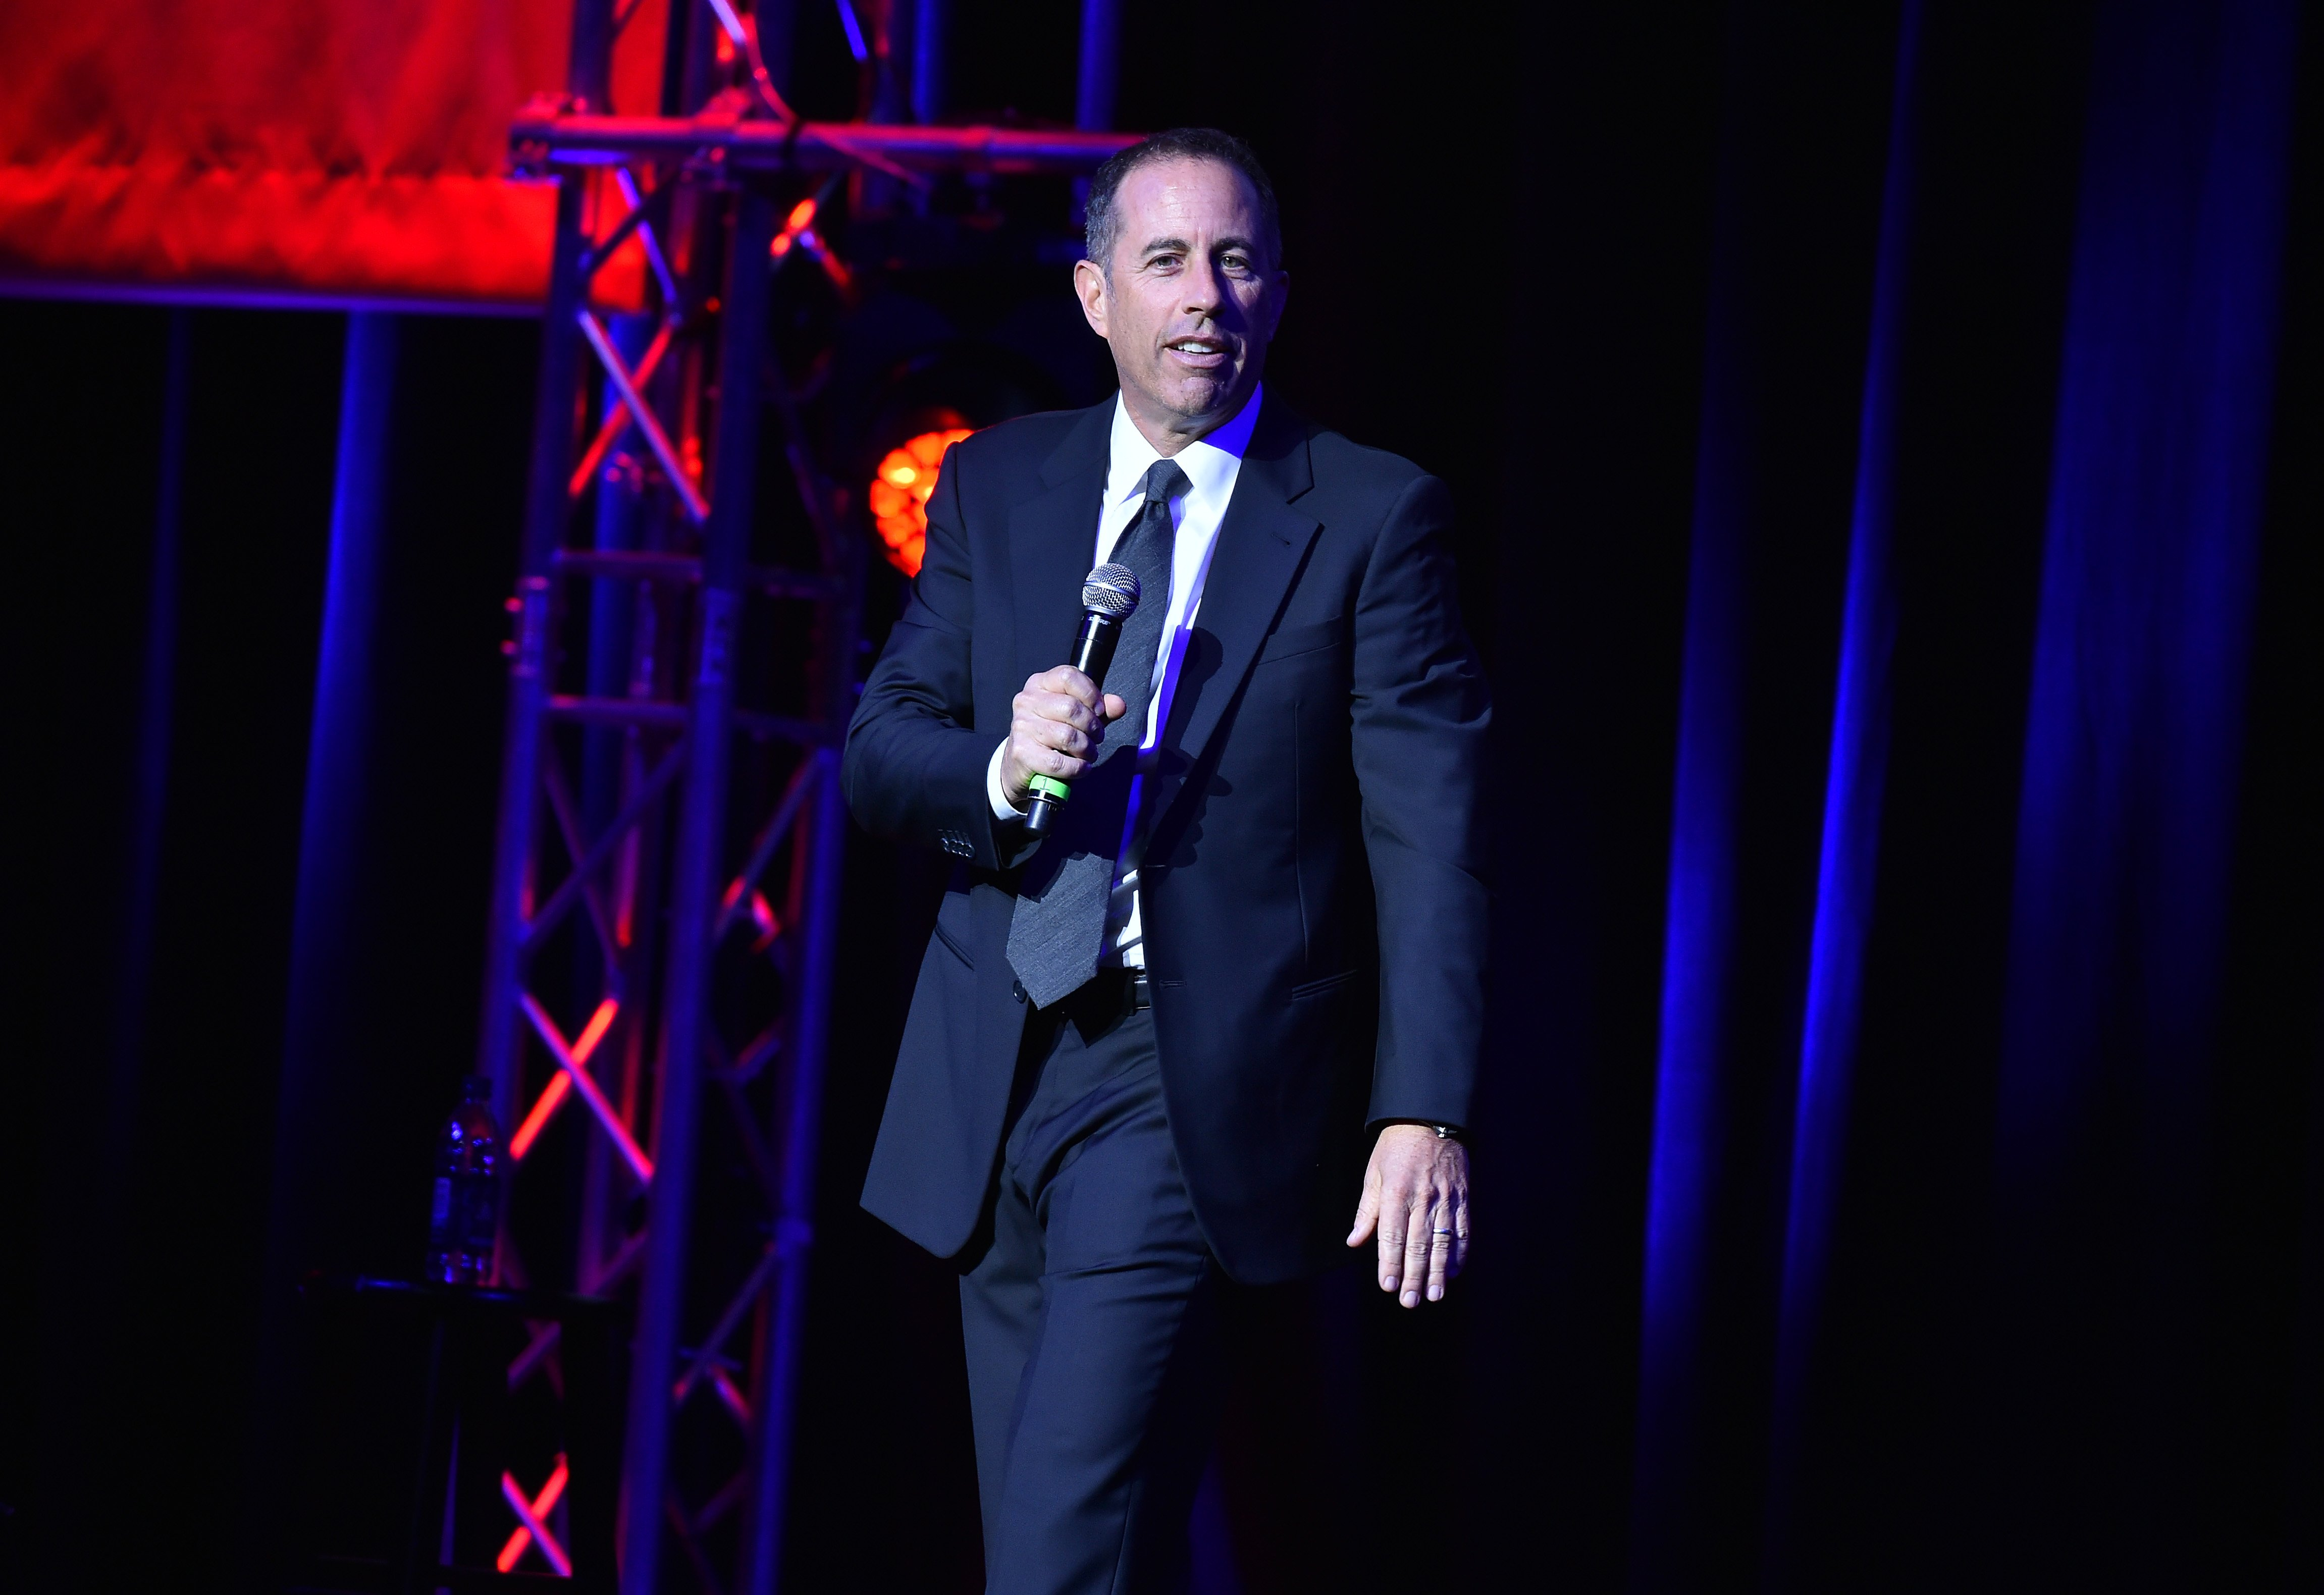 Jerry Seinfeld performs on stage during 10th Annual Stand Up For Heroes at The Theater at Madison Square Garden on November 1, 2016 in New York City